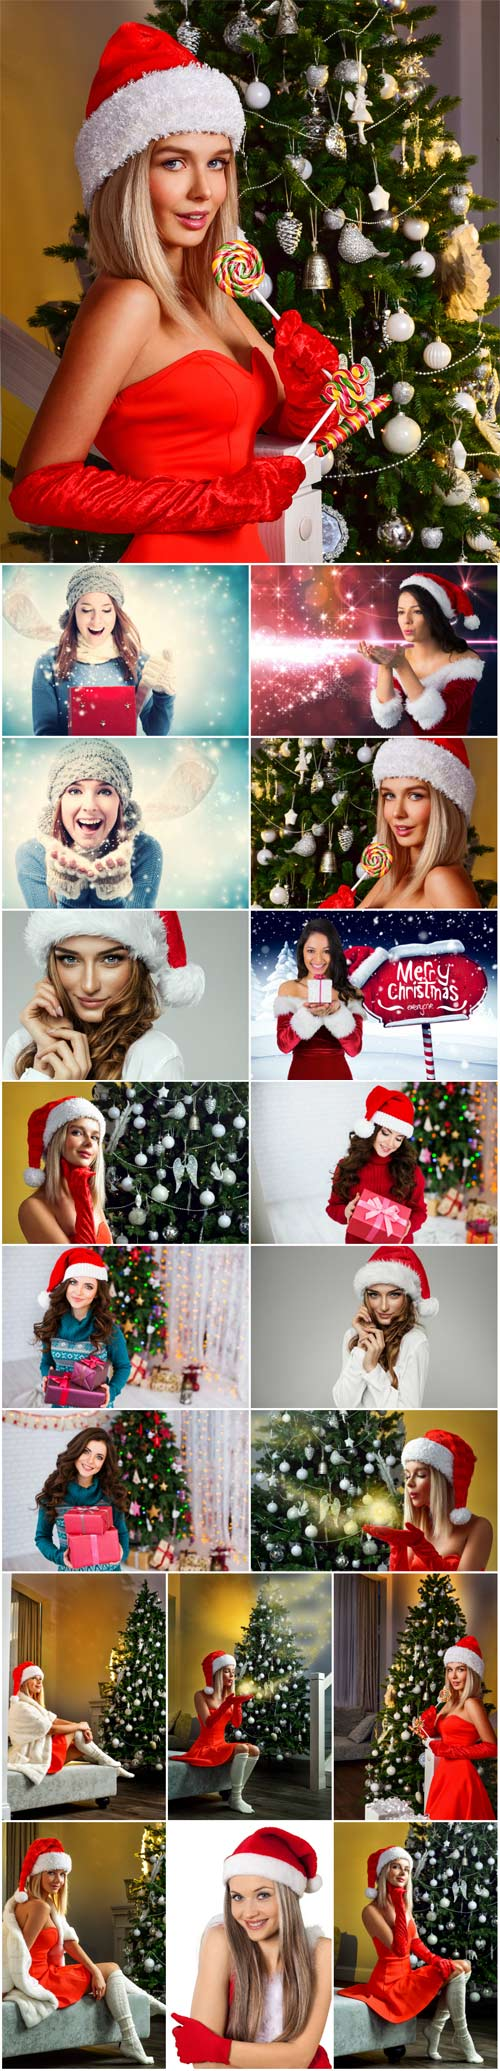 New Year and Christmas stock photos №61